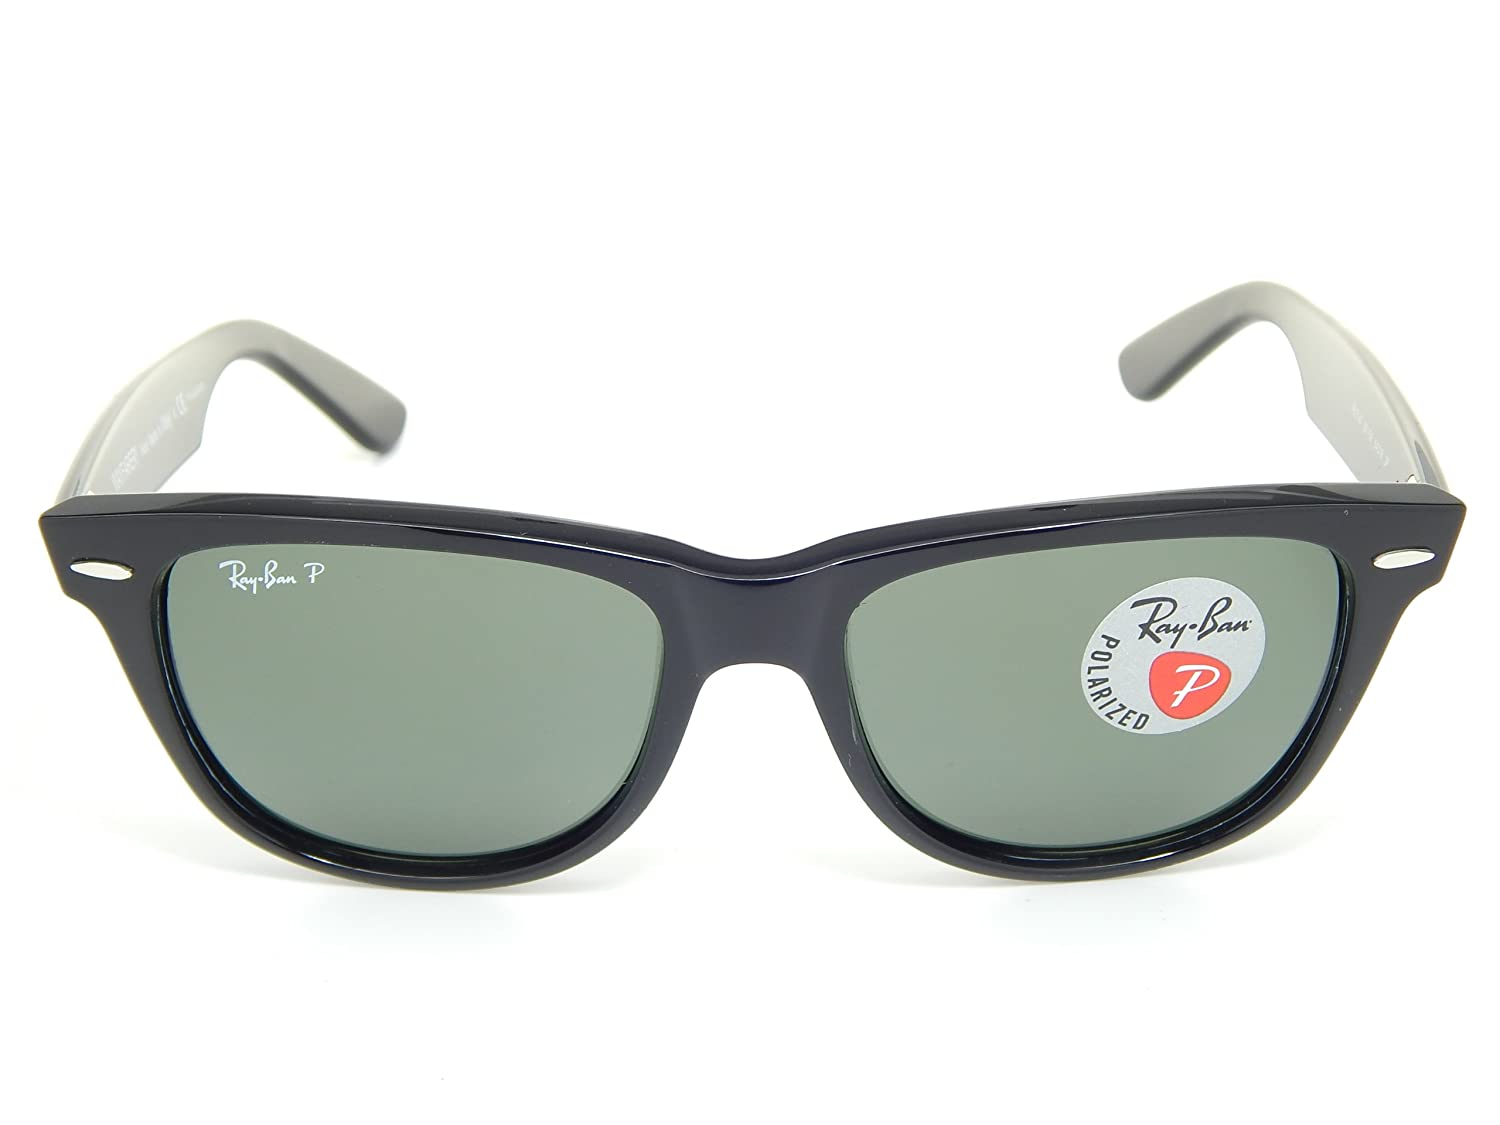 cd421f2f5156c Amazon.com  Ray Ban Wayfarer Polarized RB2140 901 58 Black G-15 XLT  Polarized 54mm Sunglasses  Shoes